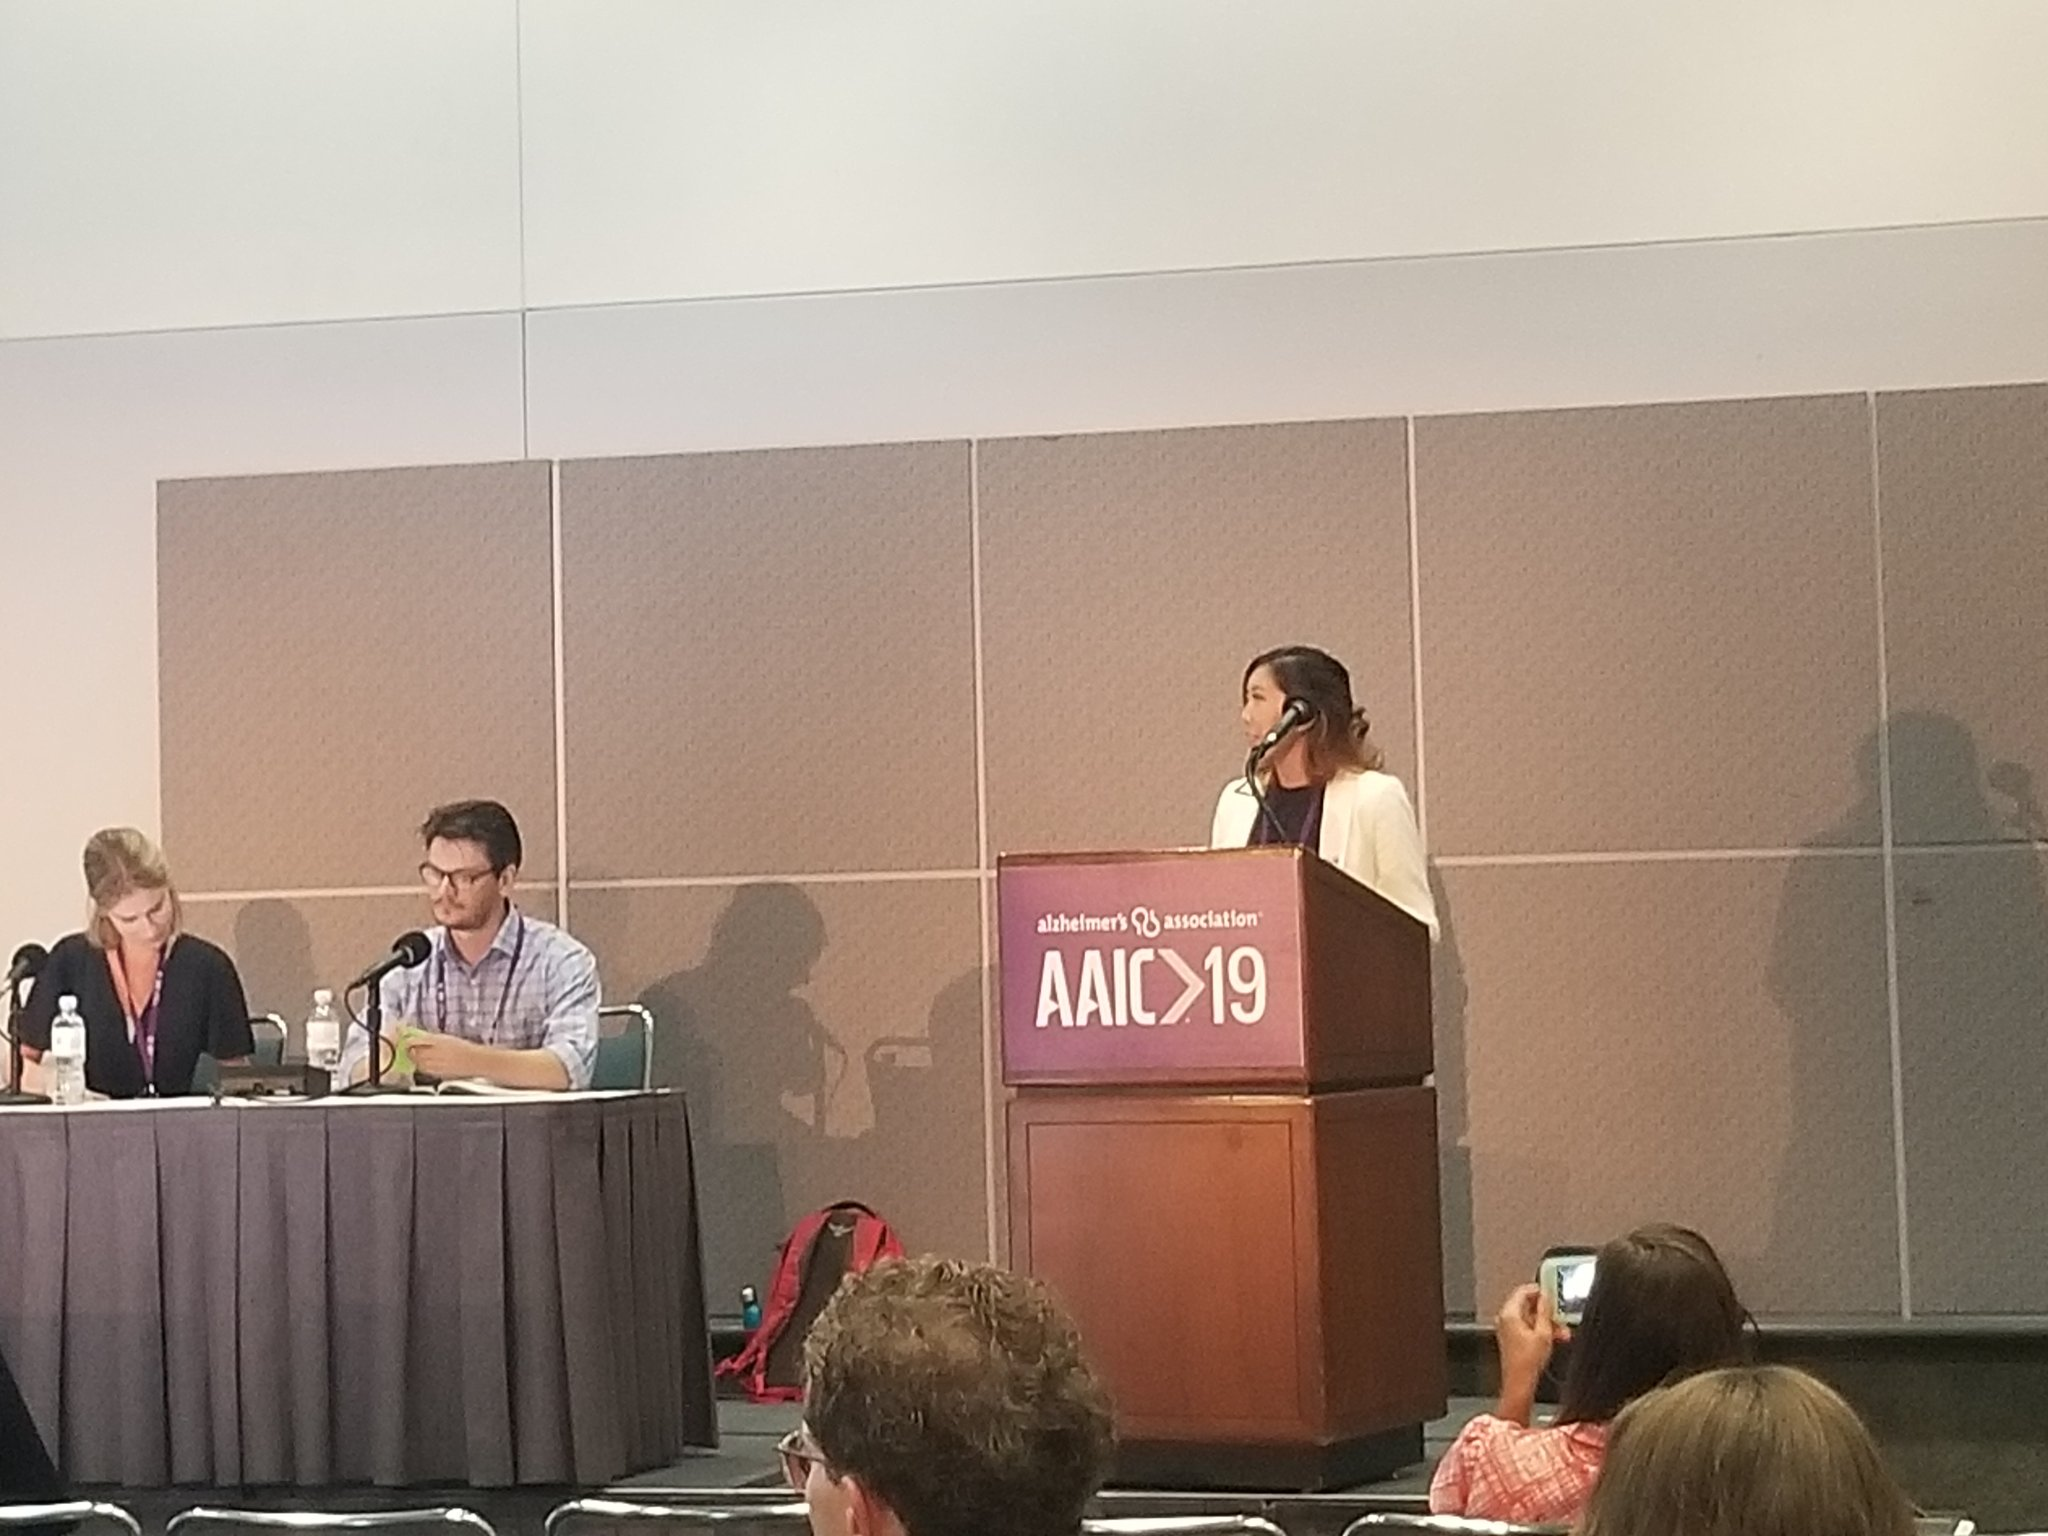 chloe eng presents at aa1c 2019